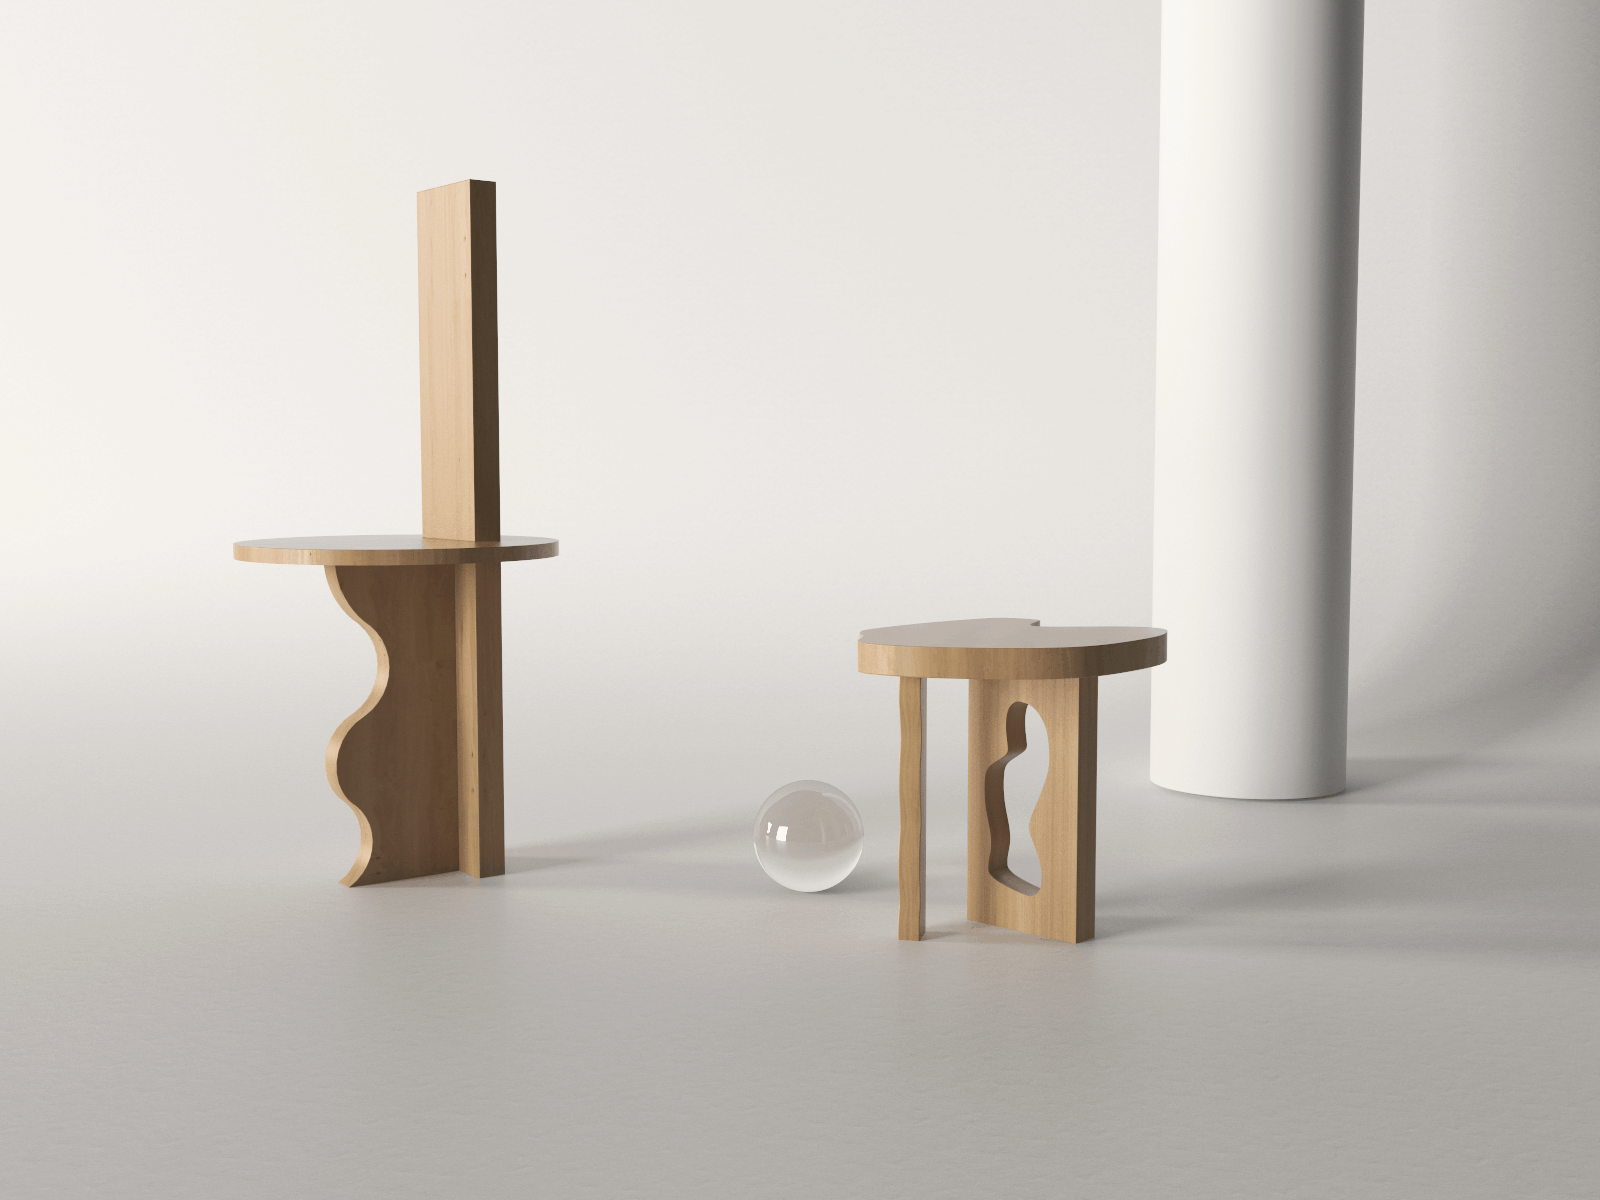 Sfera_Side_Table_and_Onda_Chair_1